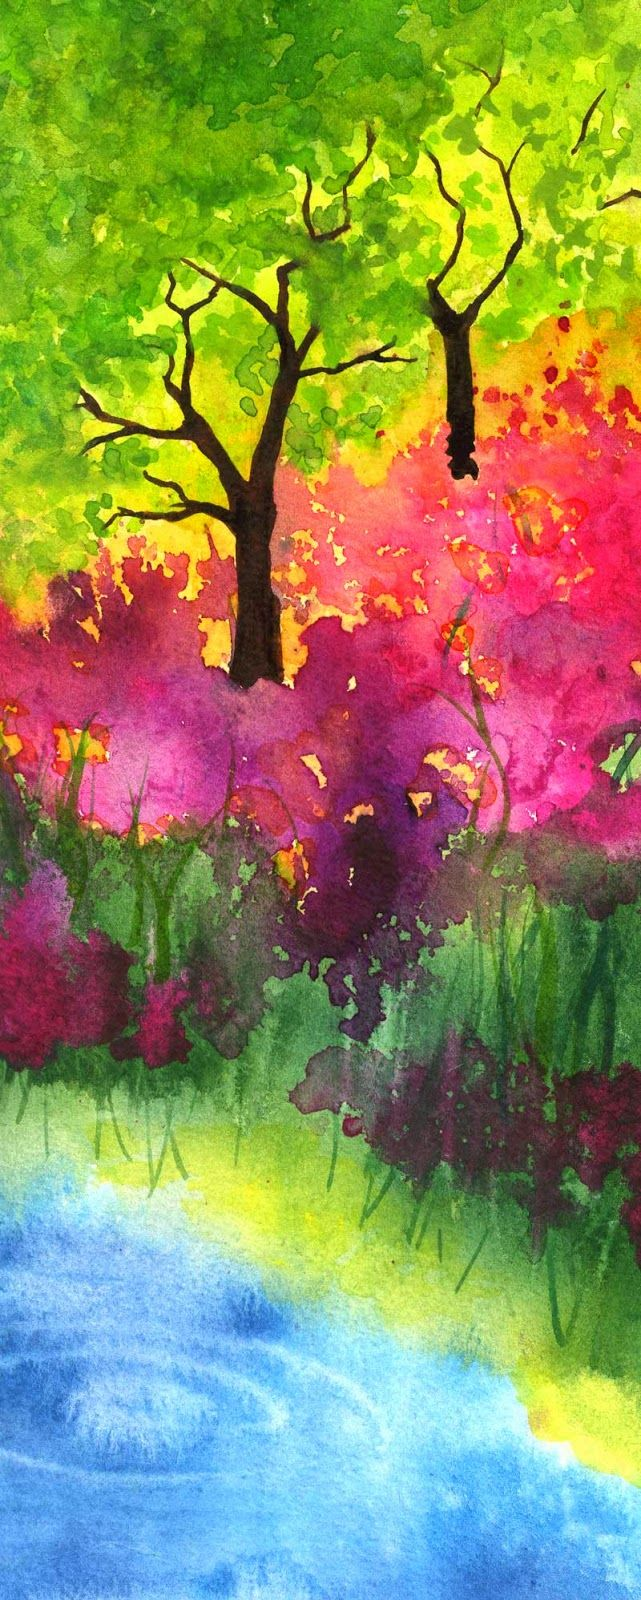 Water color by Gina Lee Kim.